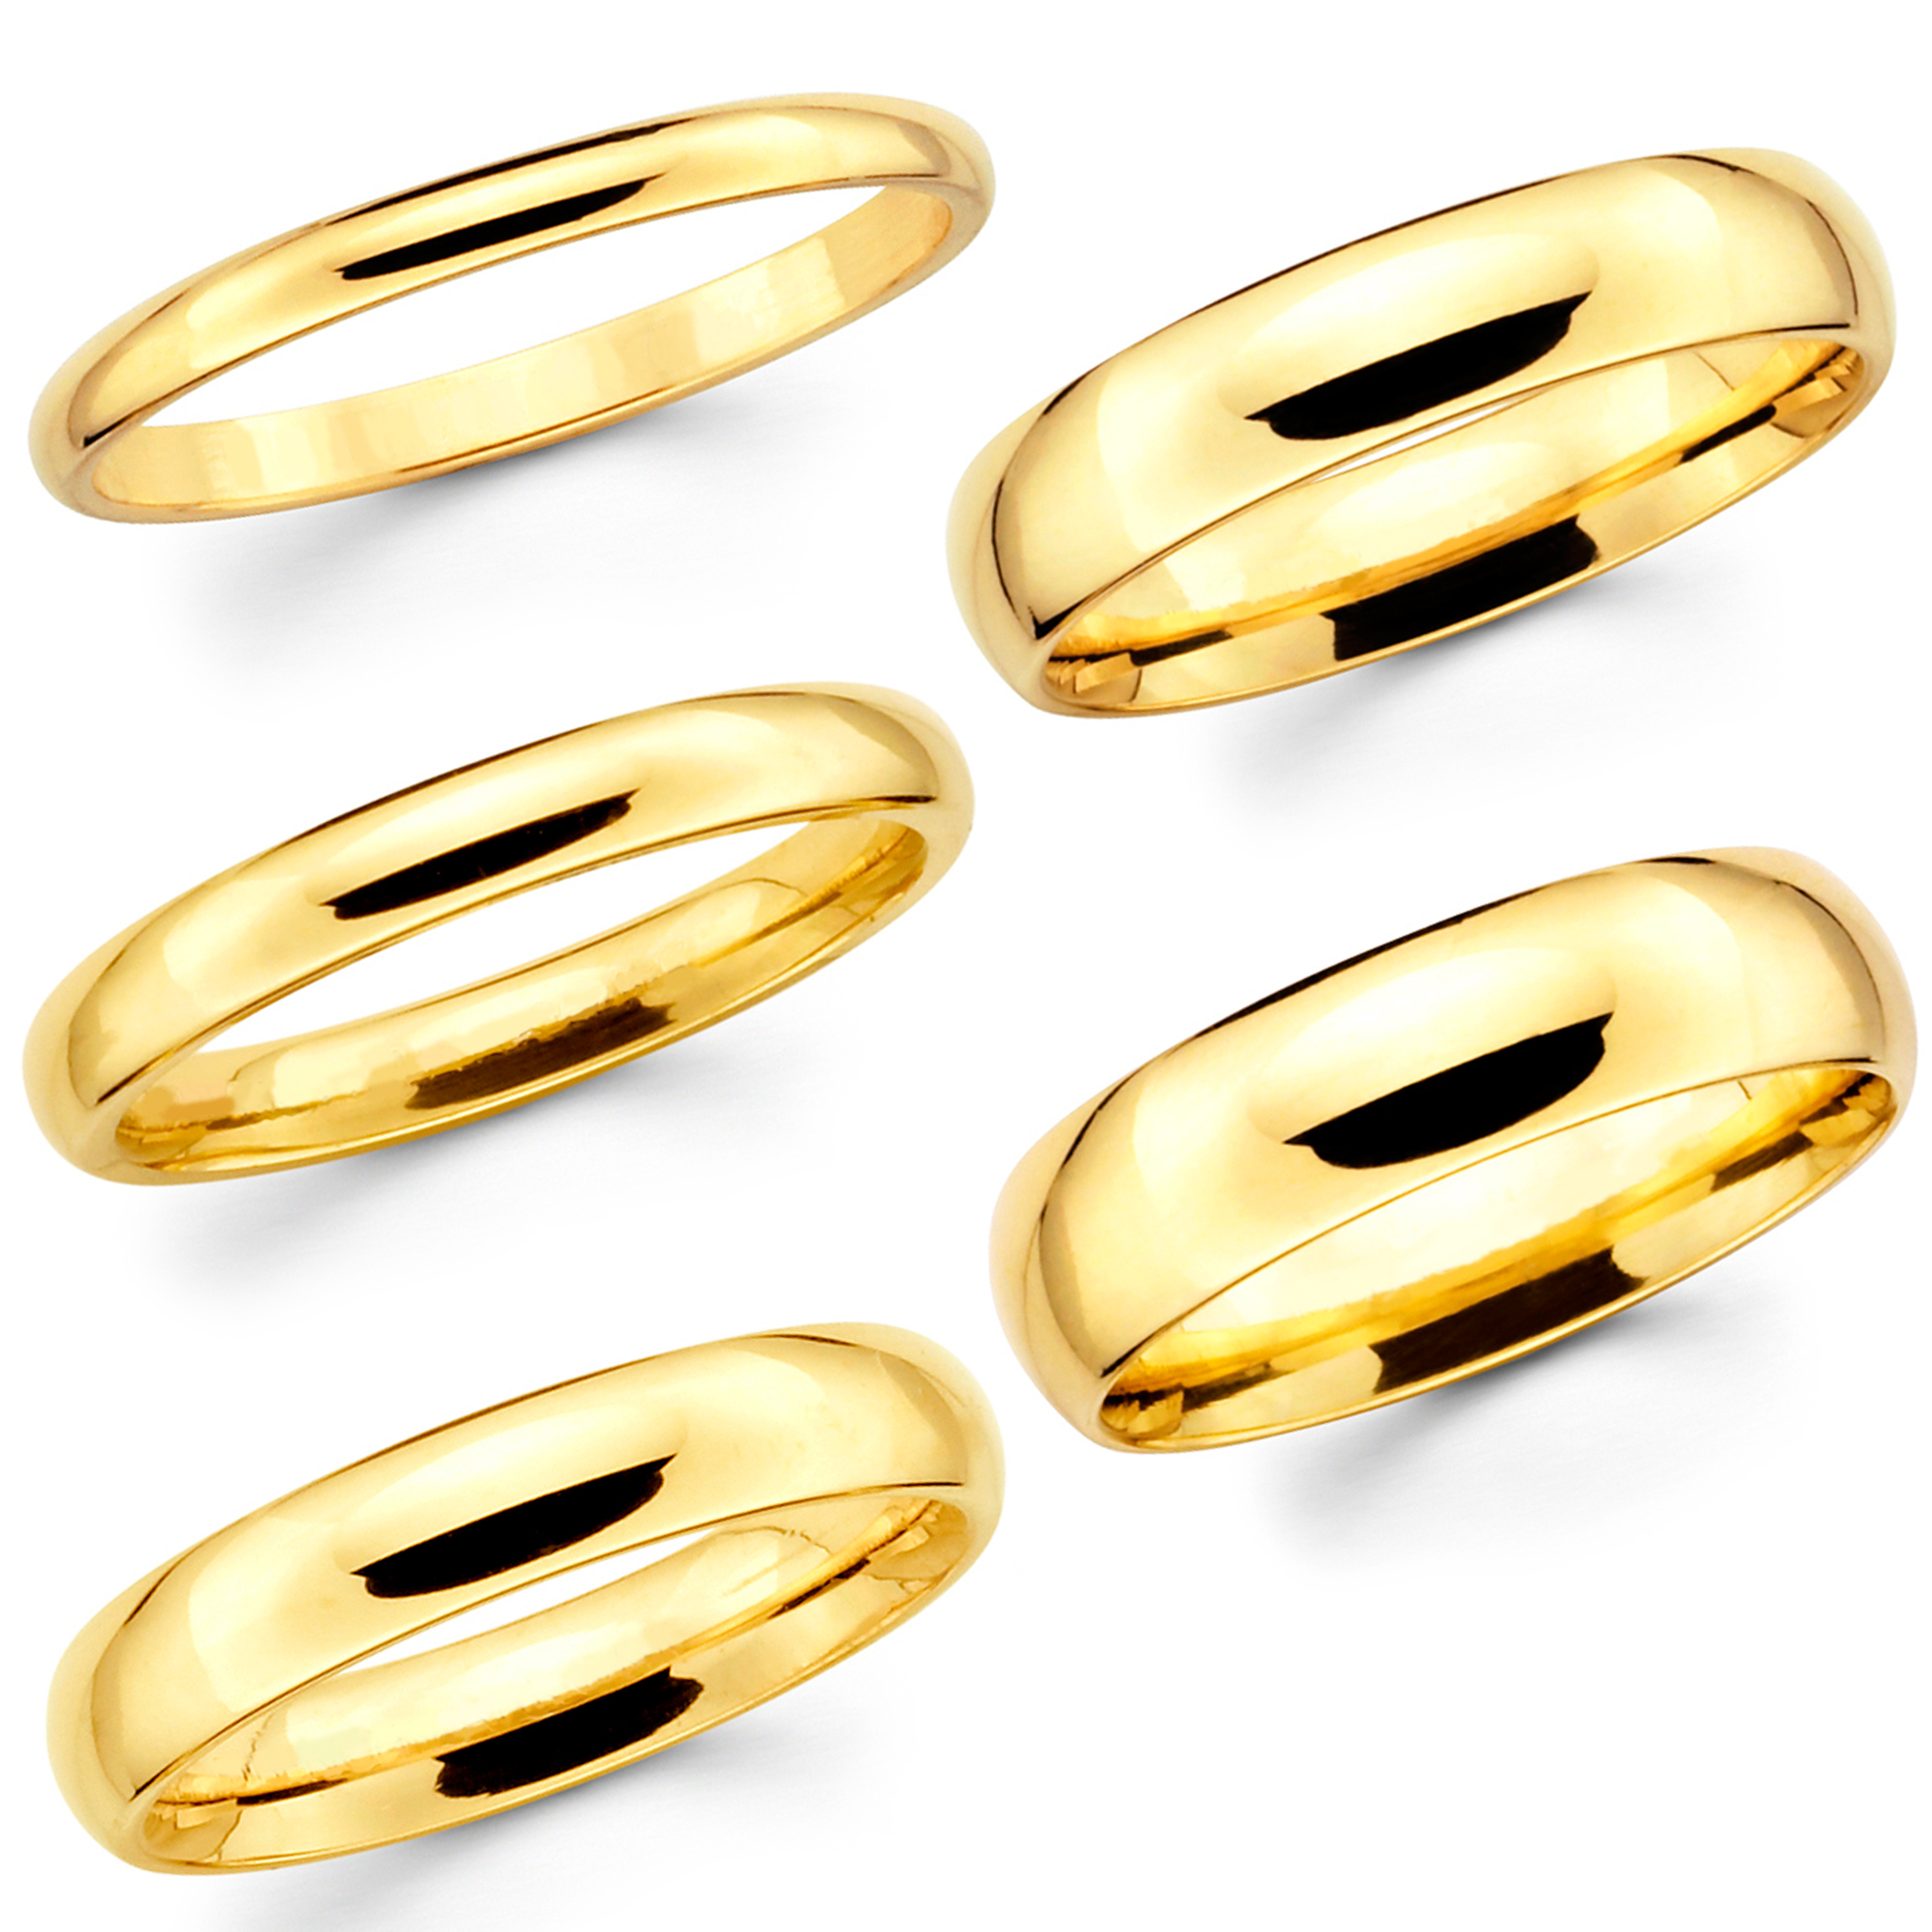 gold wedding comfort room retail solid property band fit brushed finish bands mm white mens l